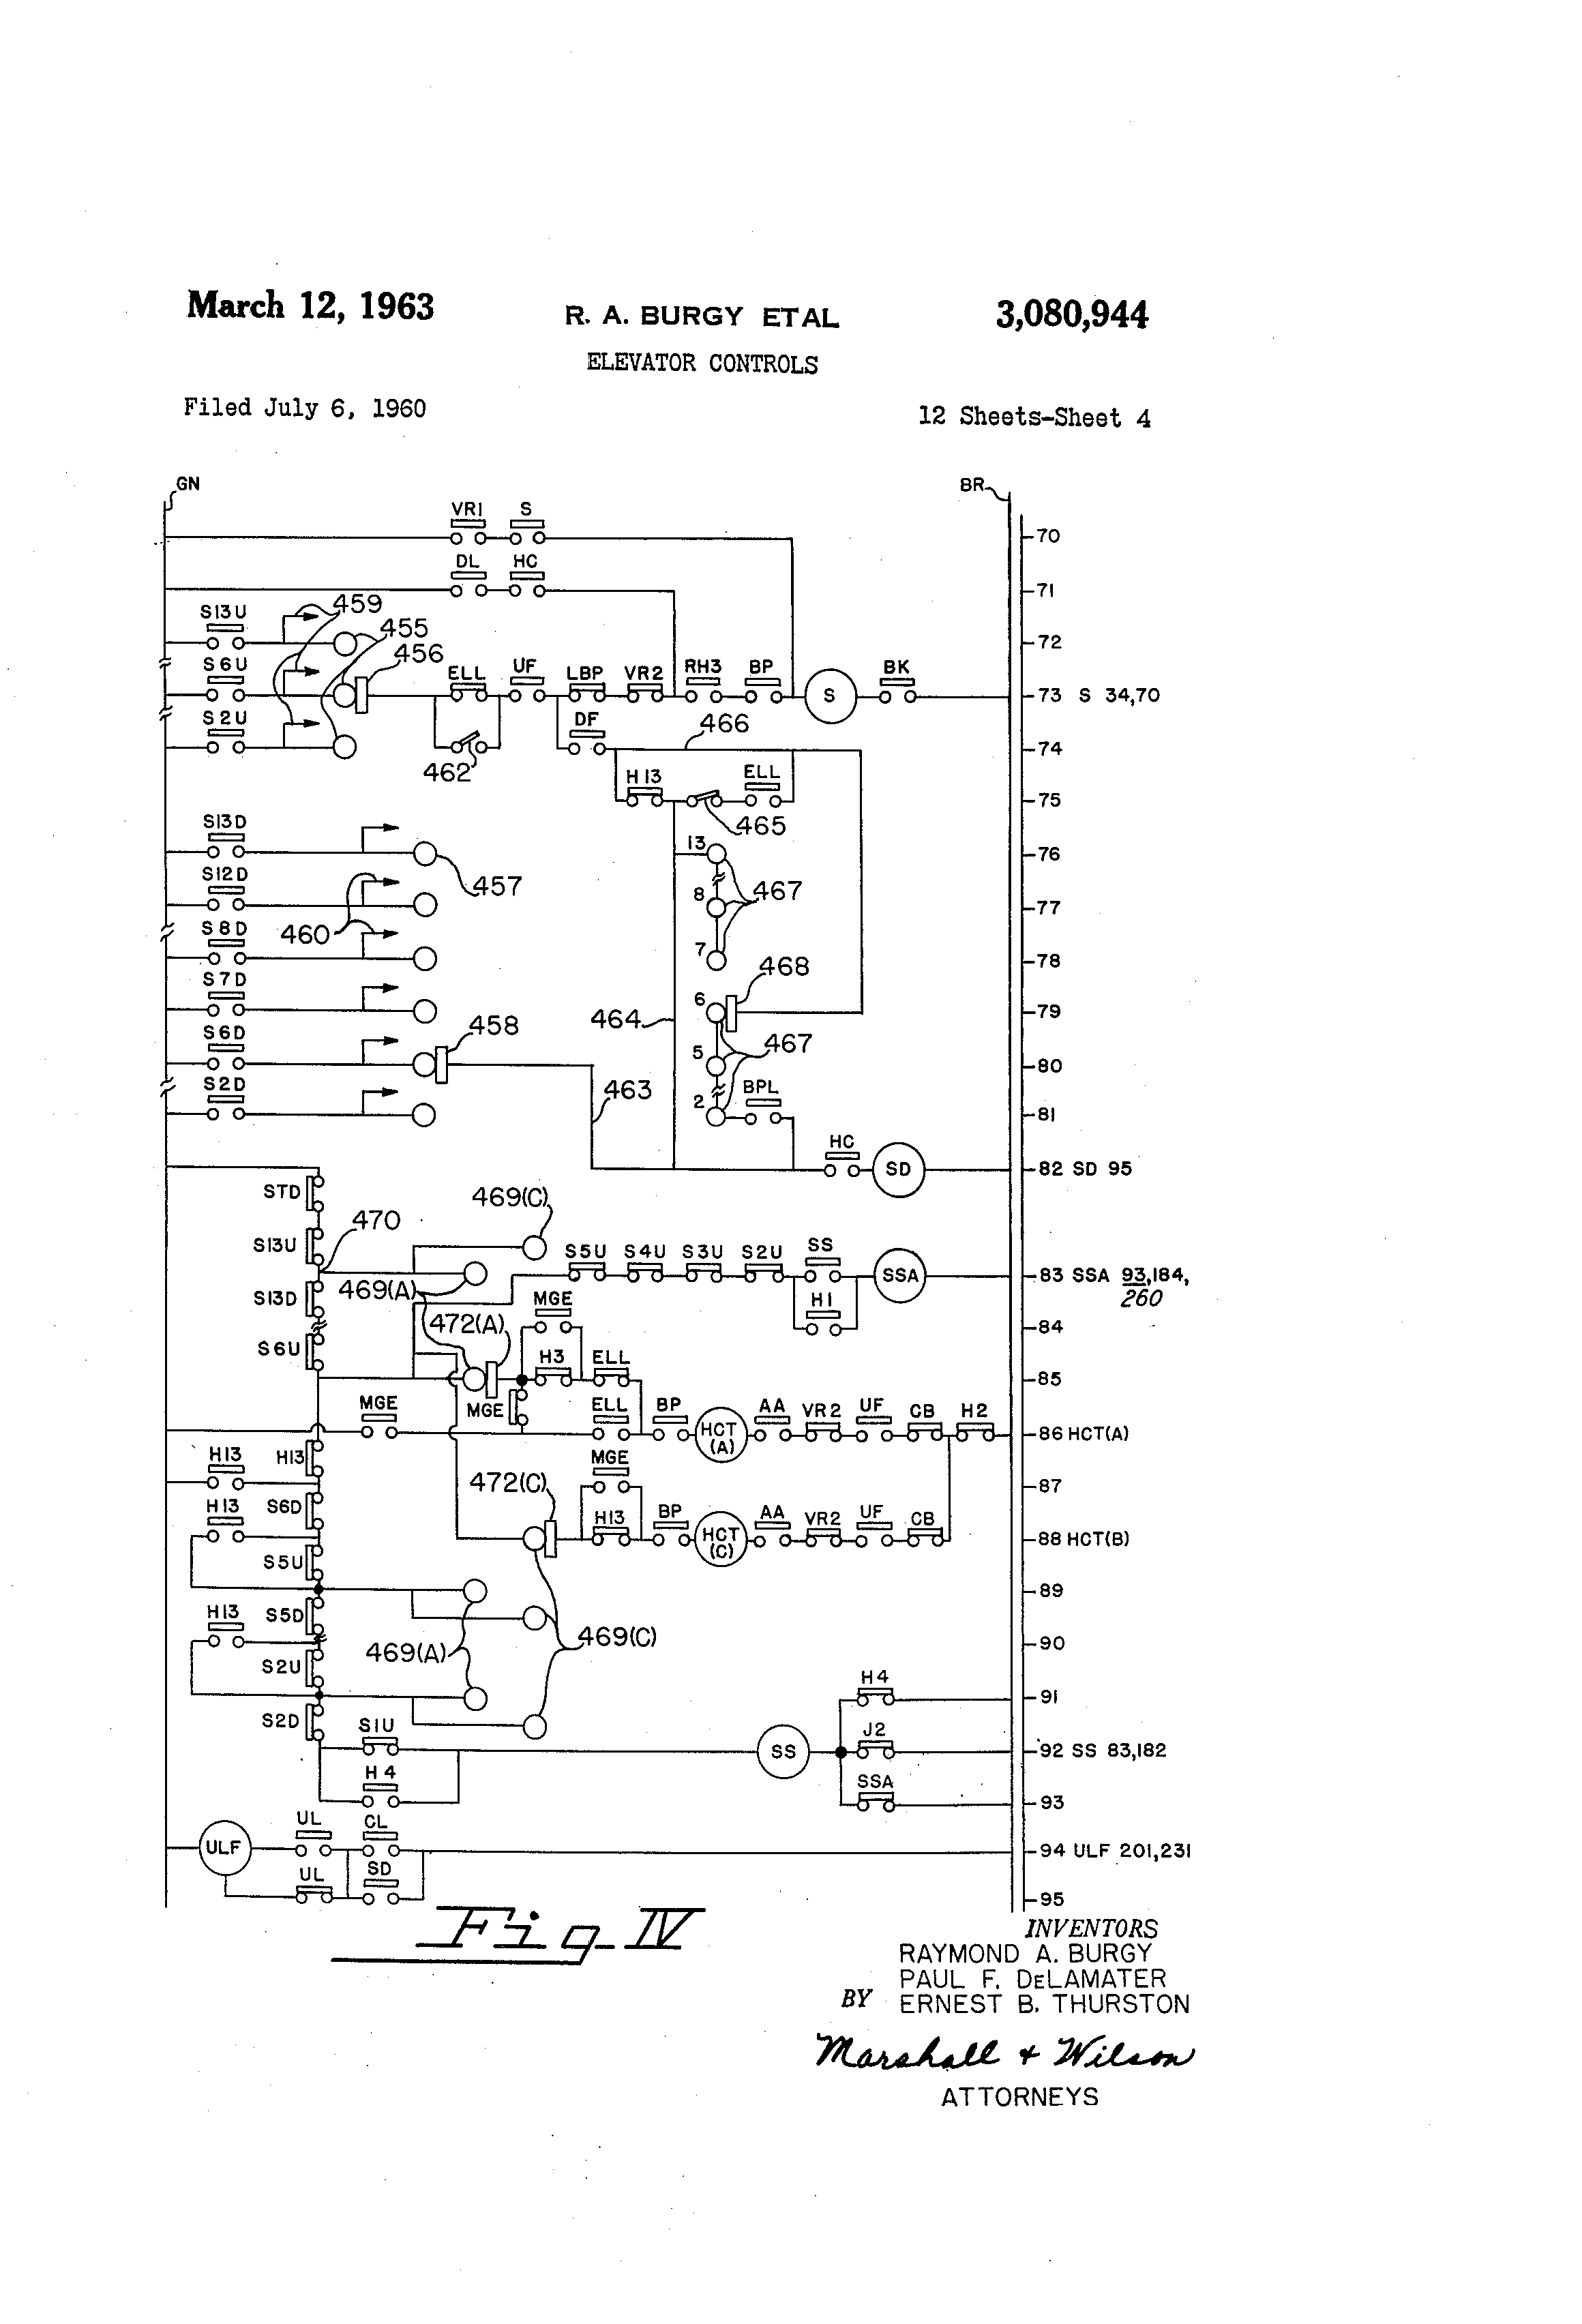 shunt trip wiring diagram for elevator solidfonts elevator recall wiring diagram pictures